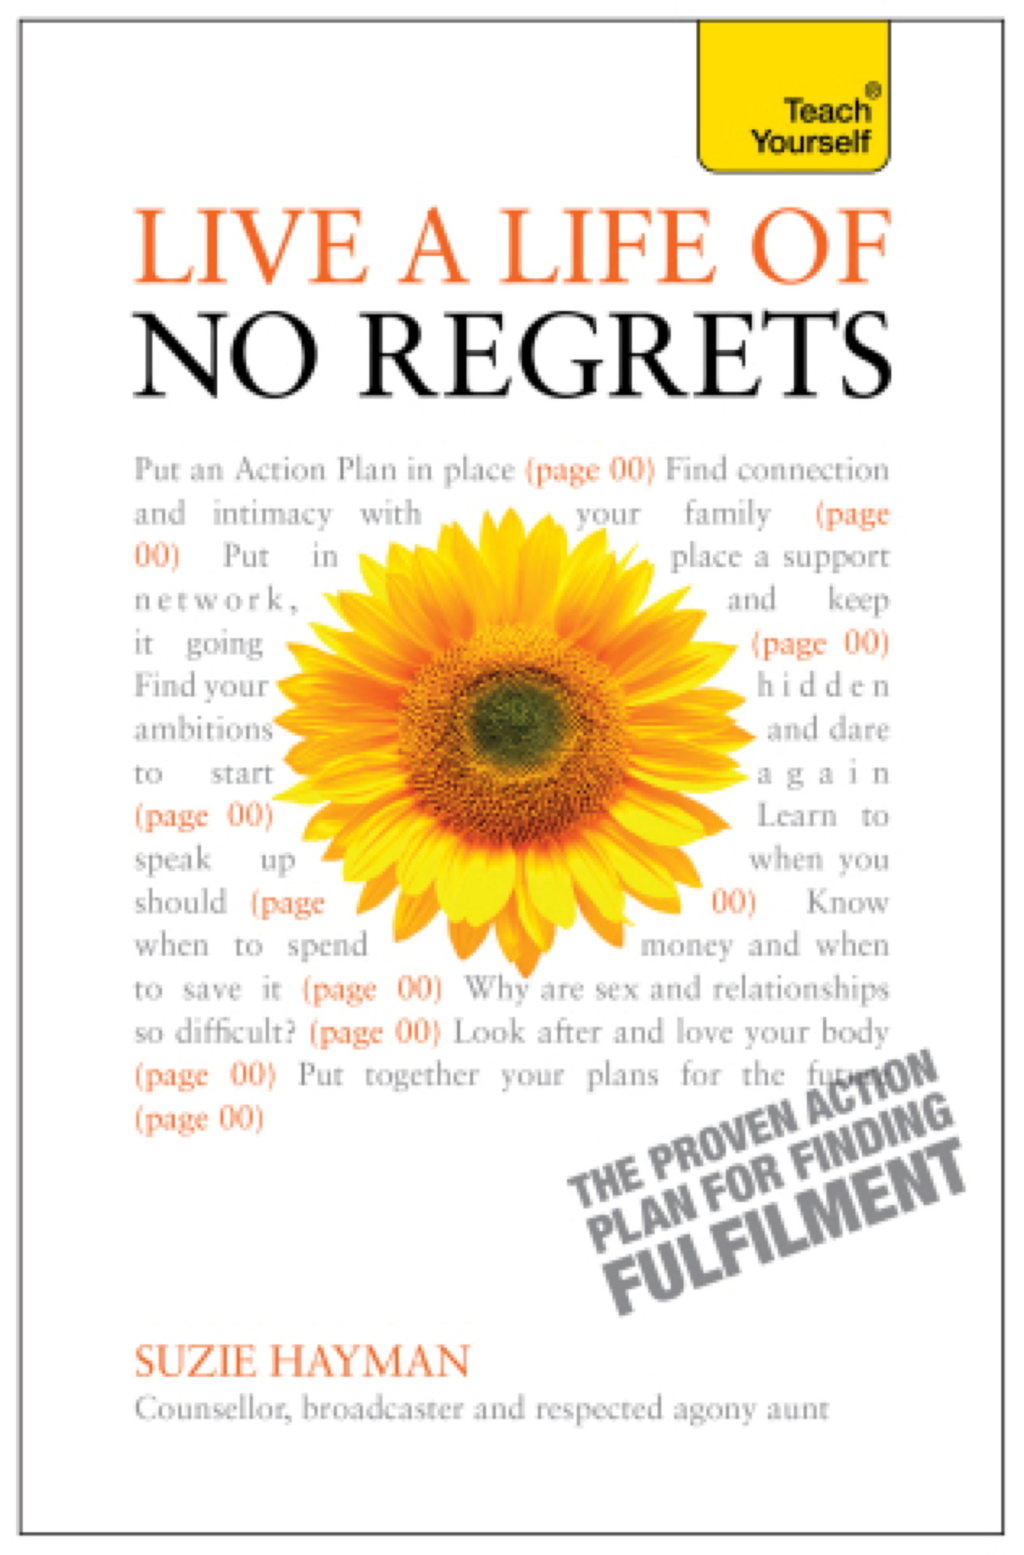 Live a Life of No Regrets - The proven action plan for finding fulfilment: Teach Yourself